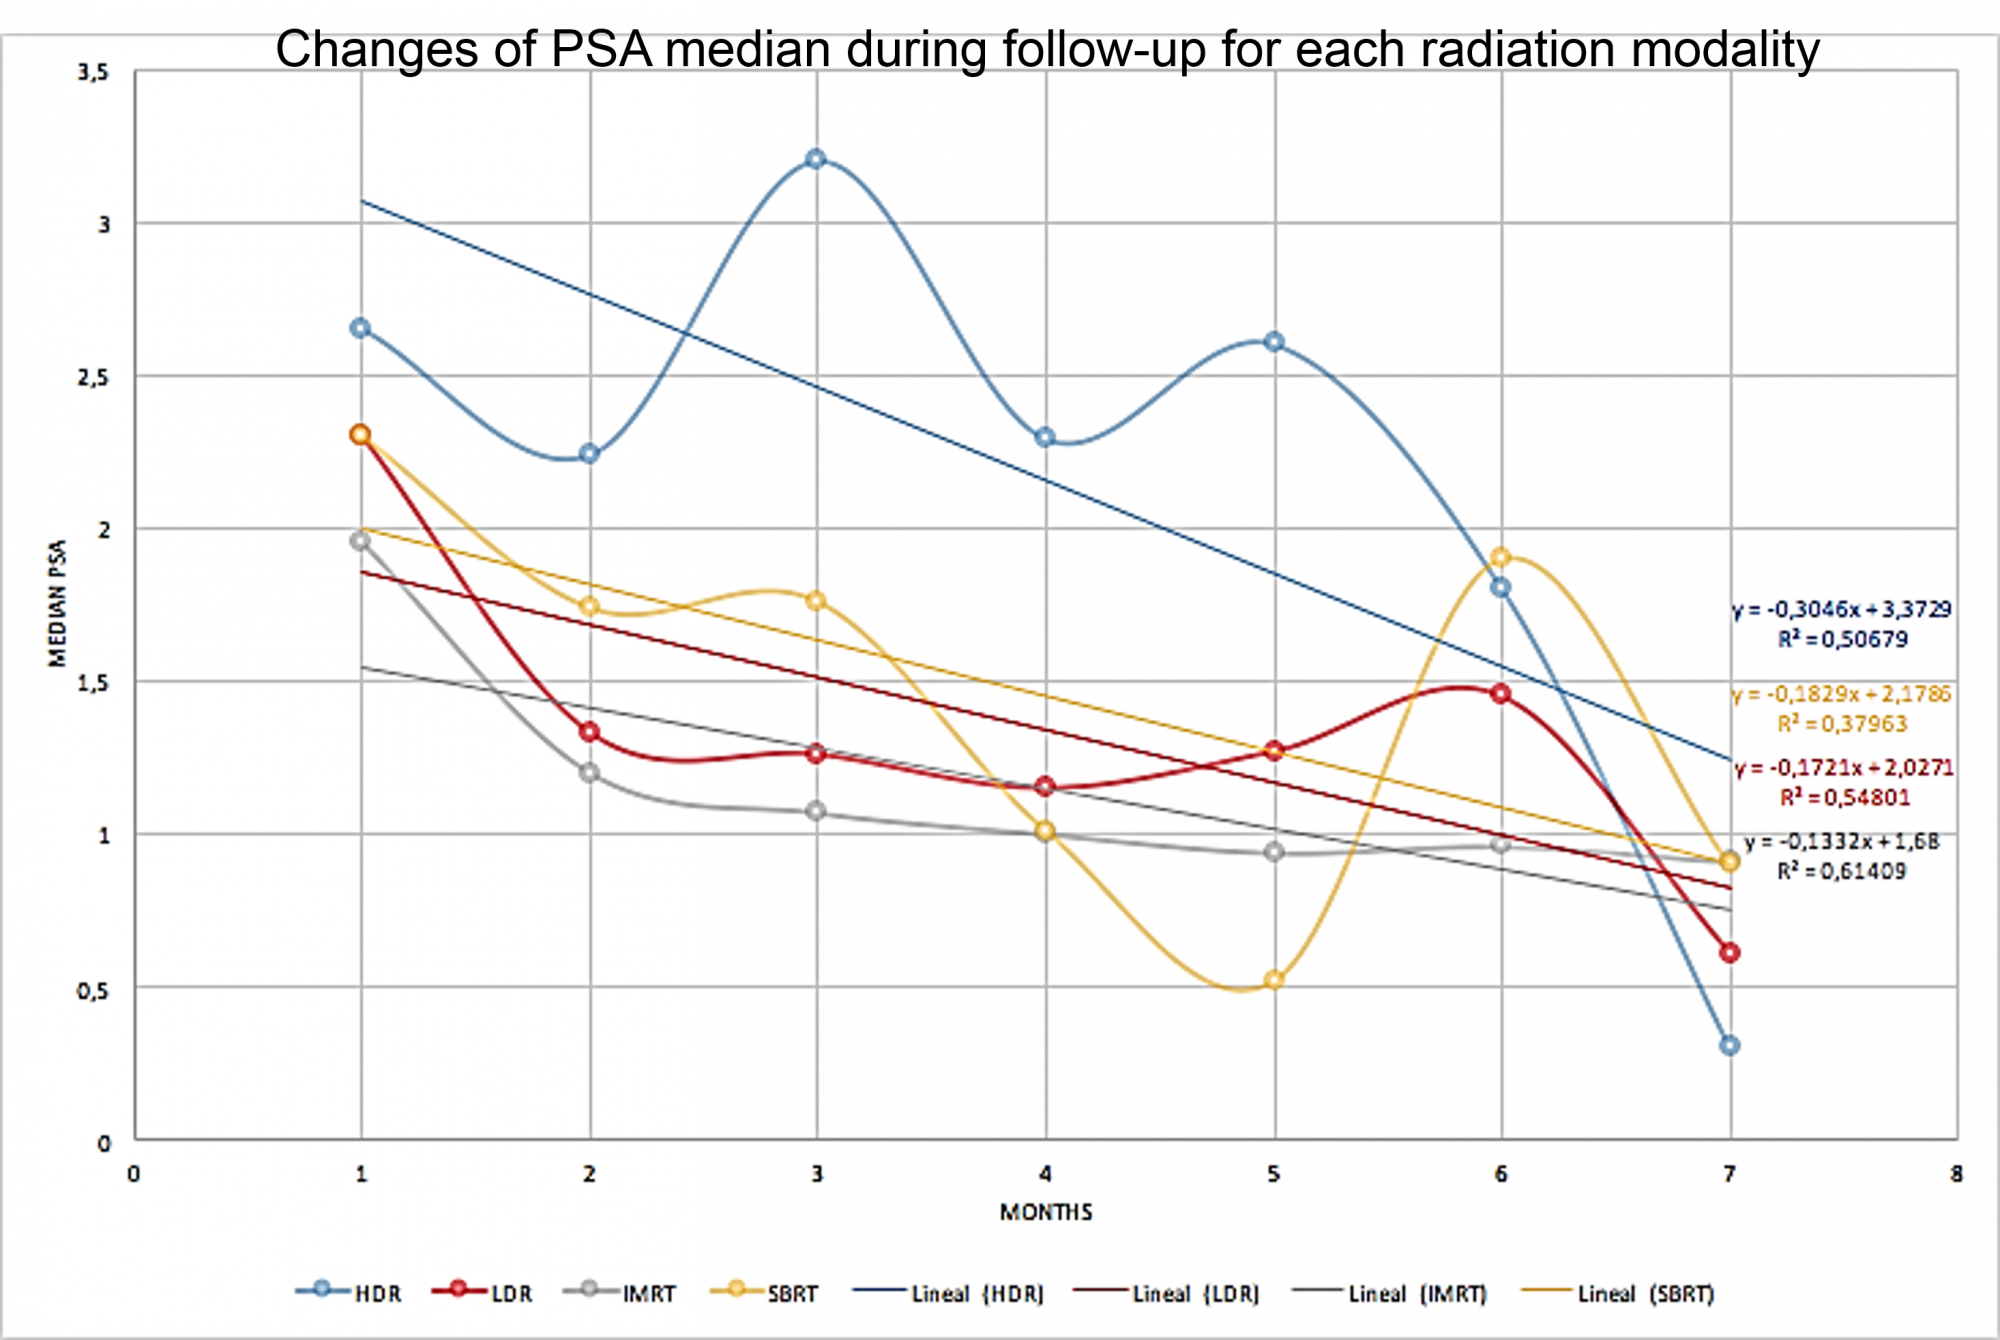 Changes of PSA median during follow-up for each radiation modality